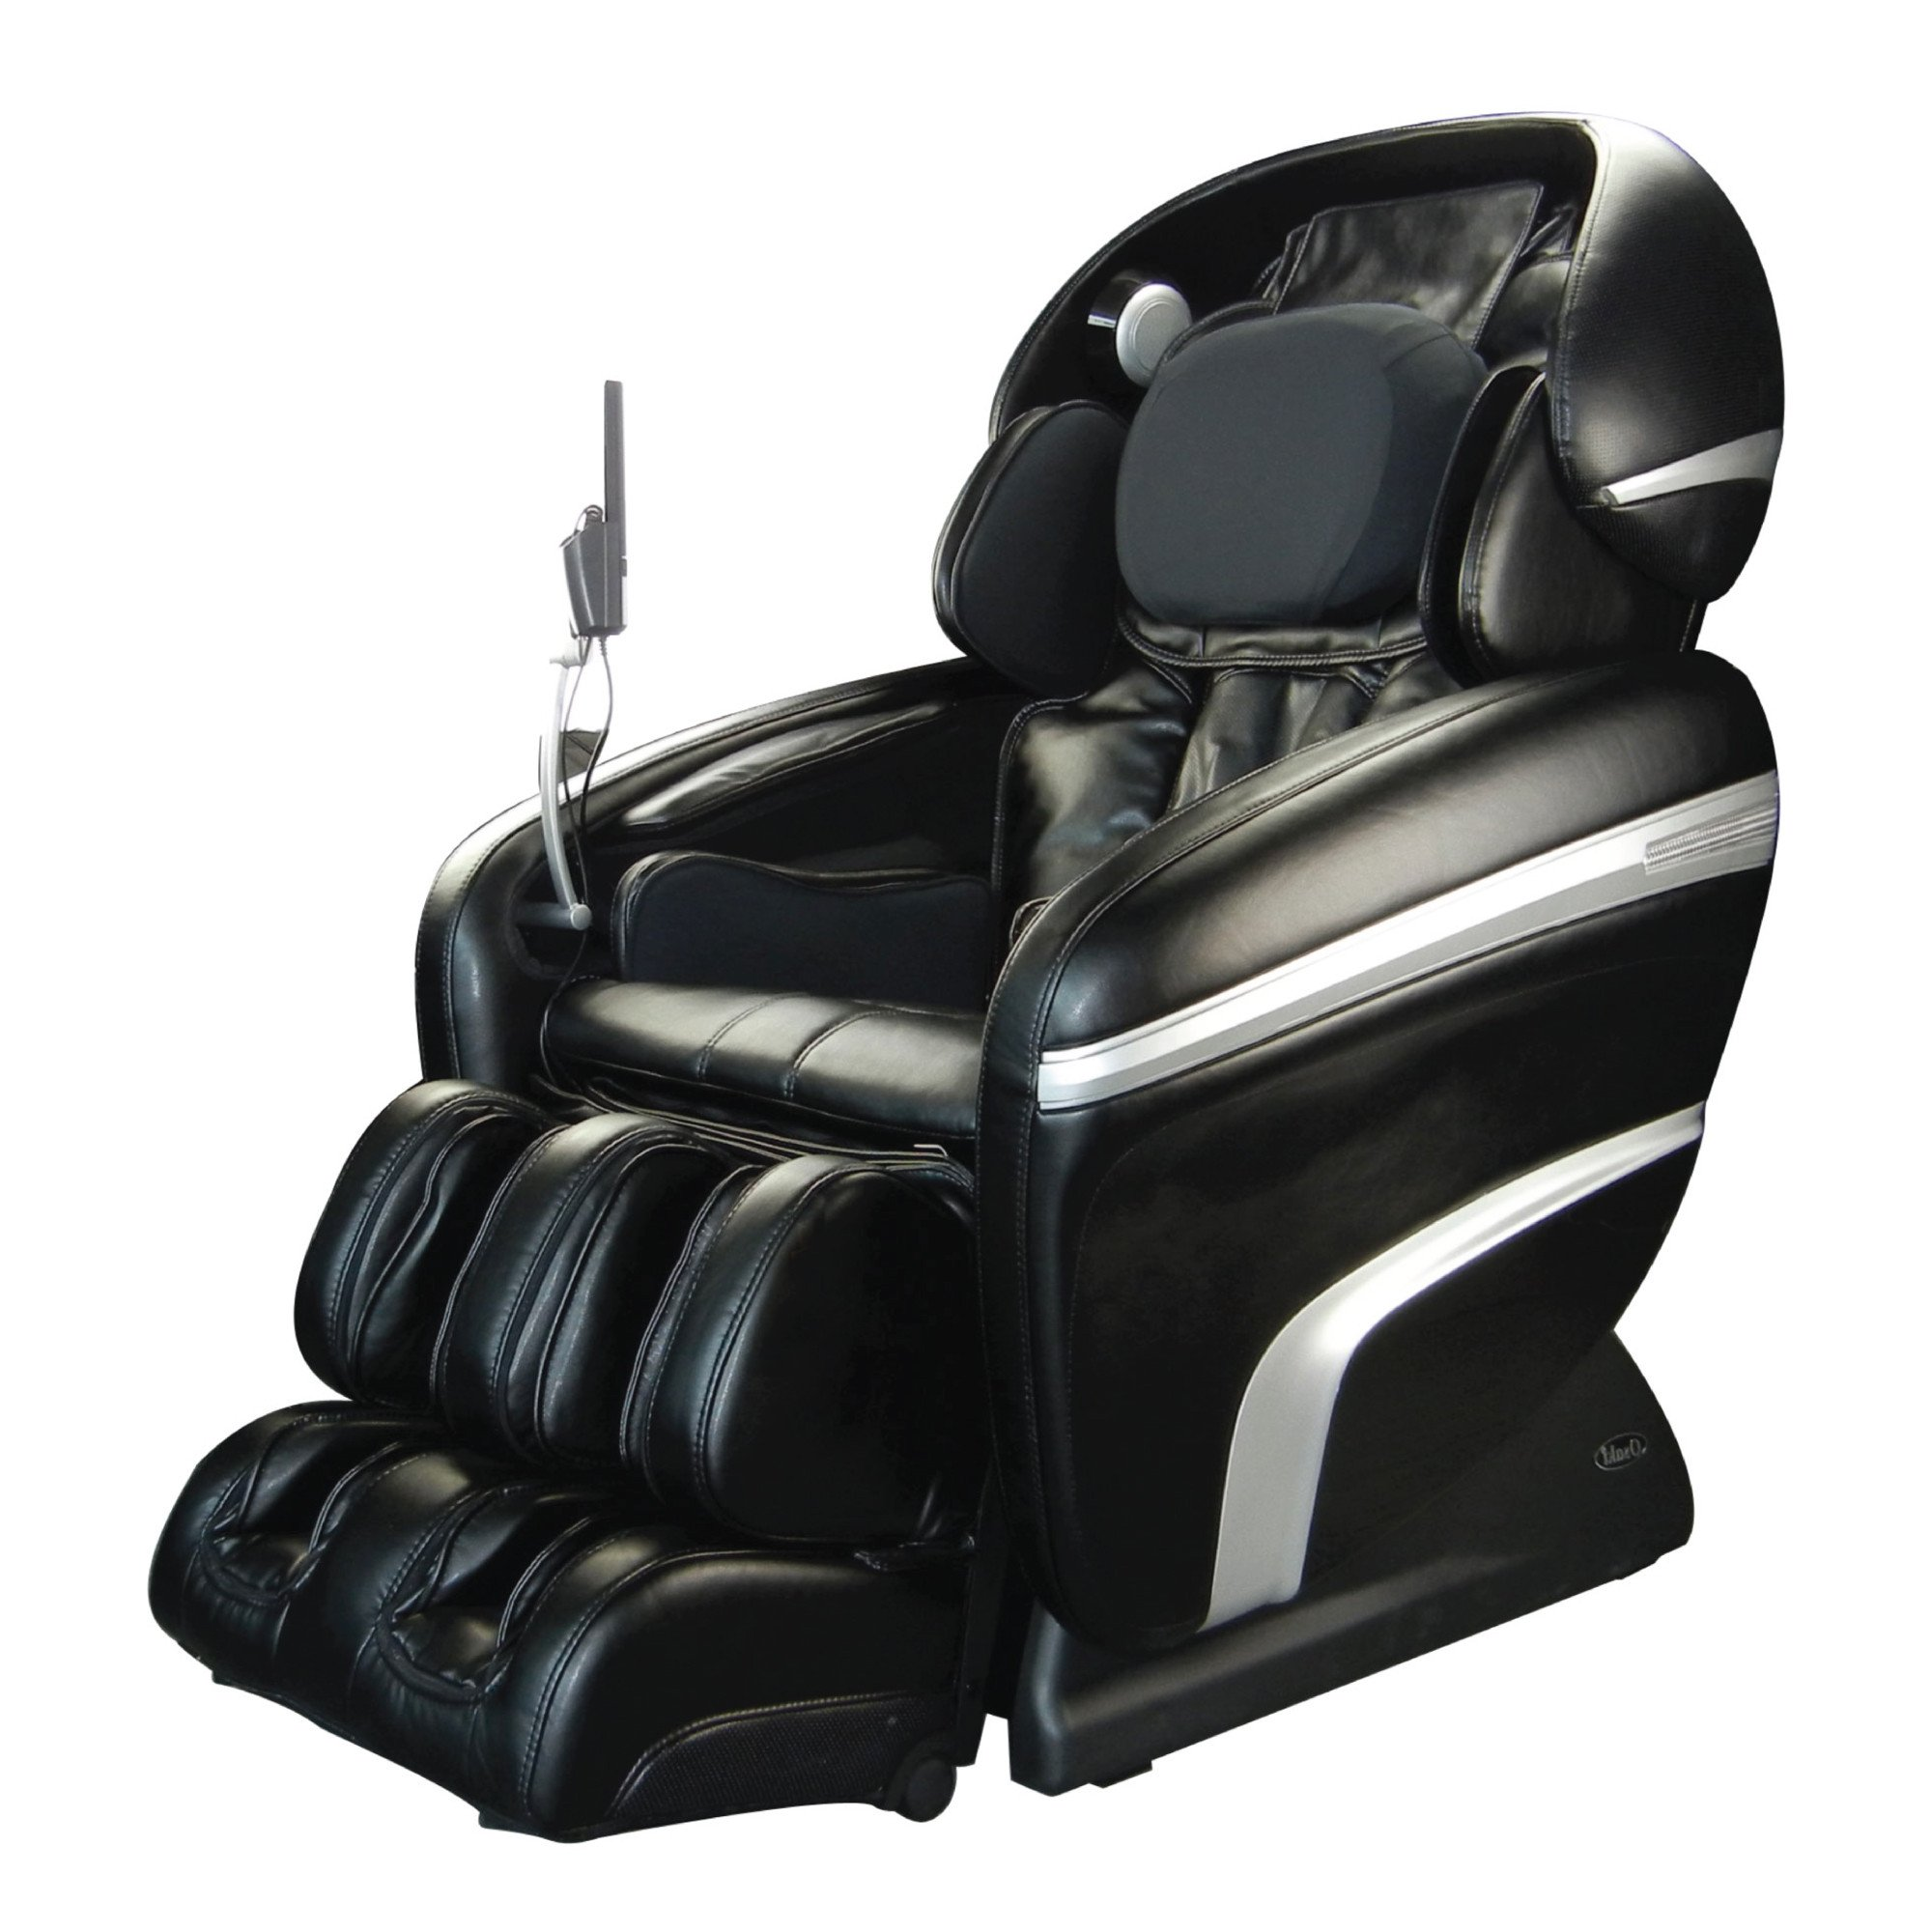 Osaki 7200CR Massage Chair - Black  - Front Angle View